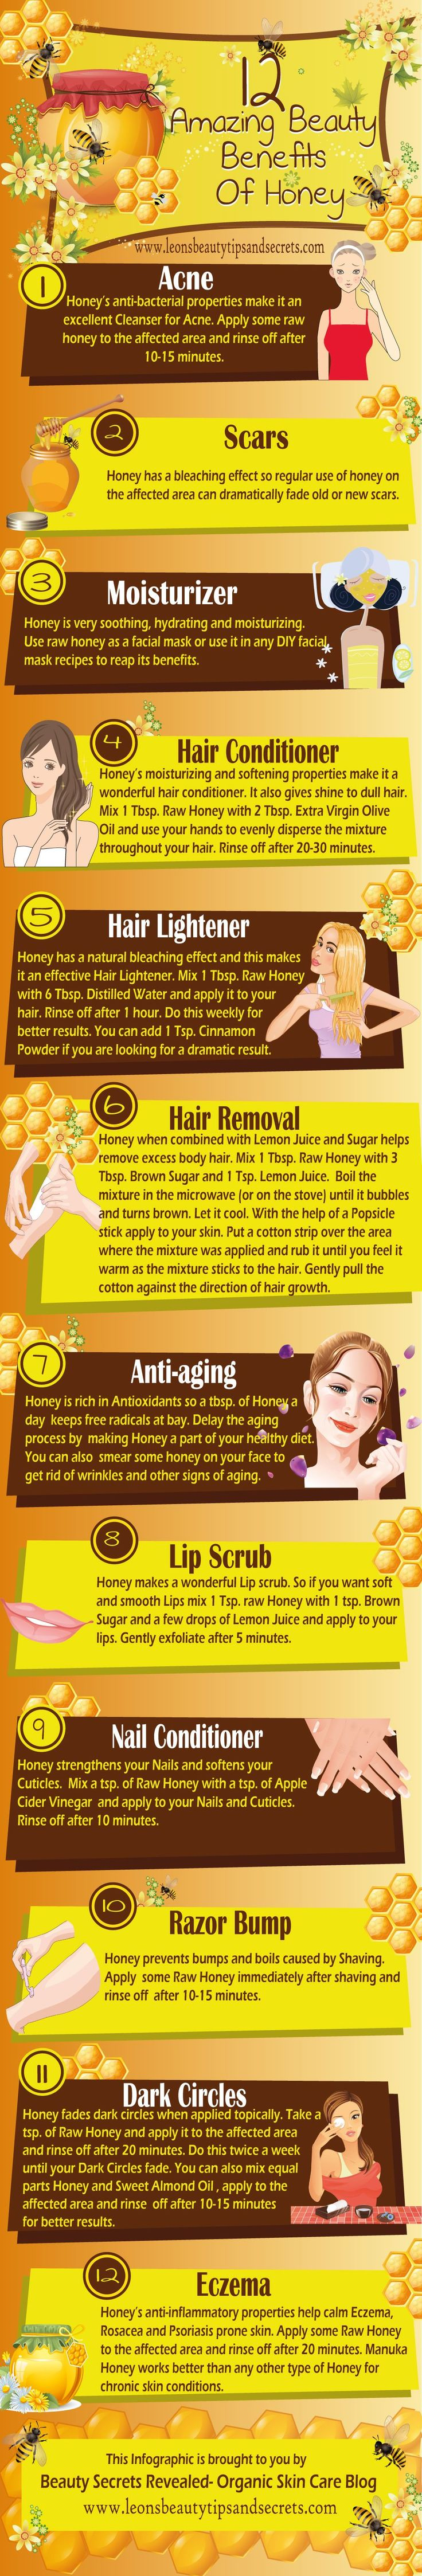 12 Amazing Beauty Benefits Of Honey Honey for eczema, acne, hair, wrinkles, scars, dark circles